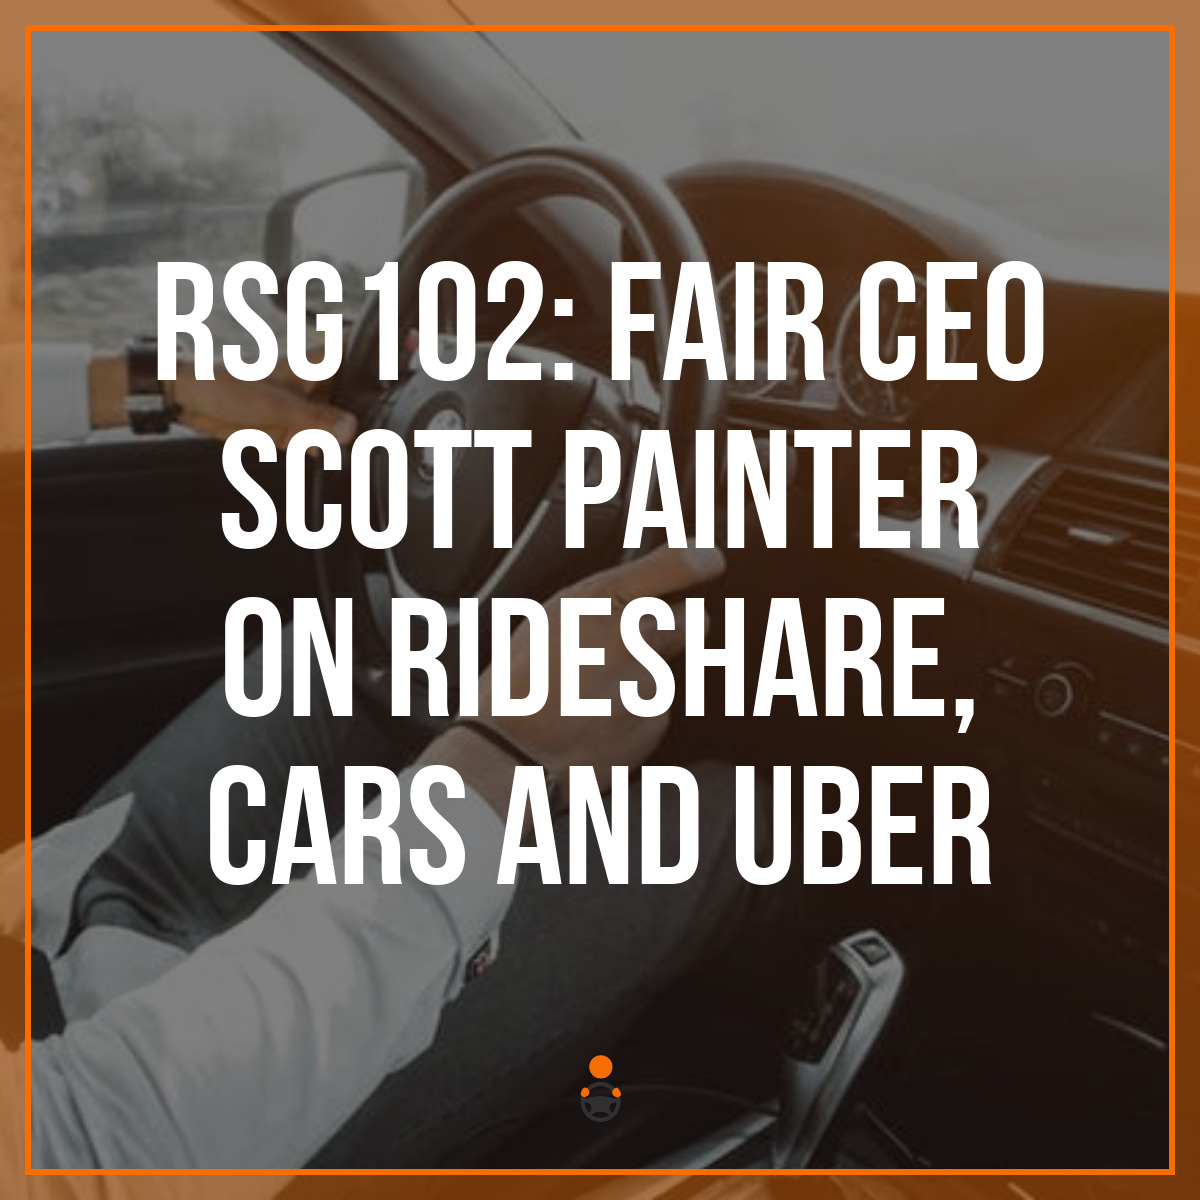 RSG102: Fair CEO Scott Painter on Rideshare, Cars and Uber